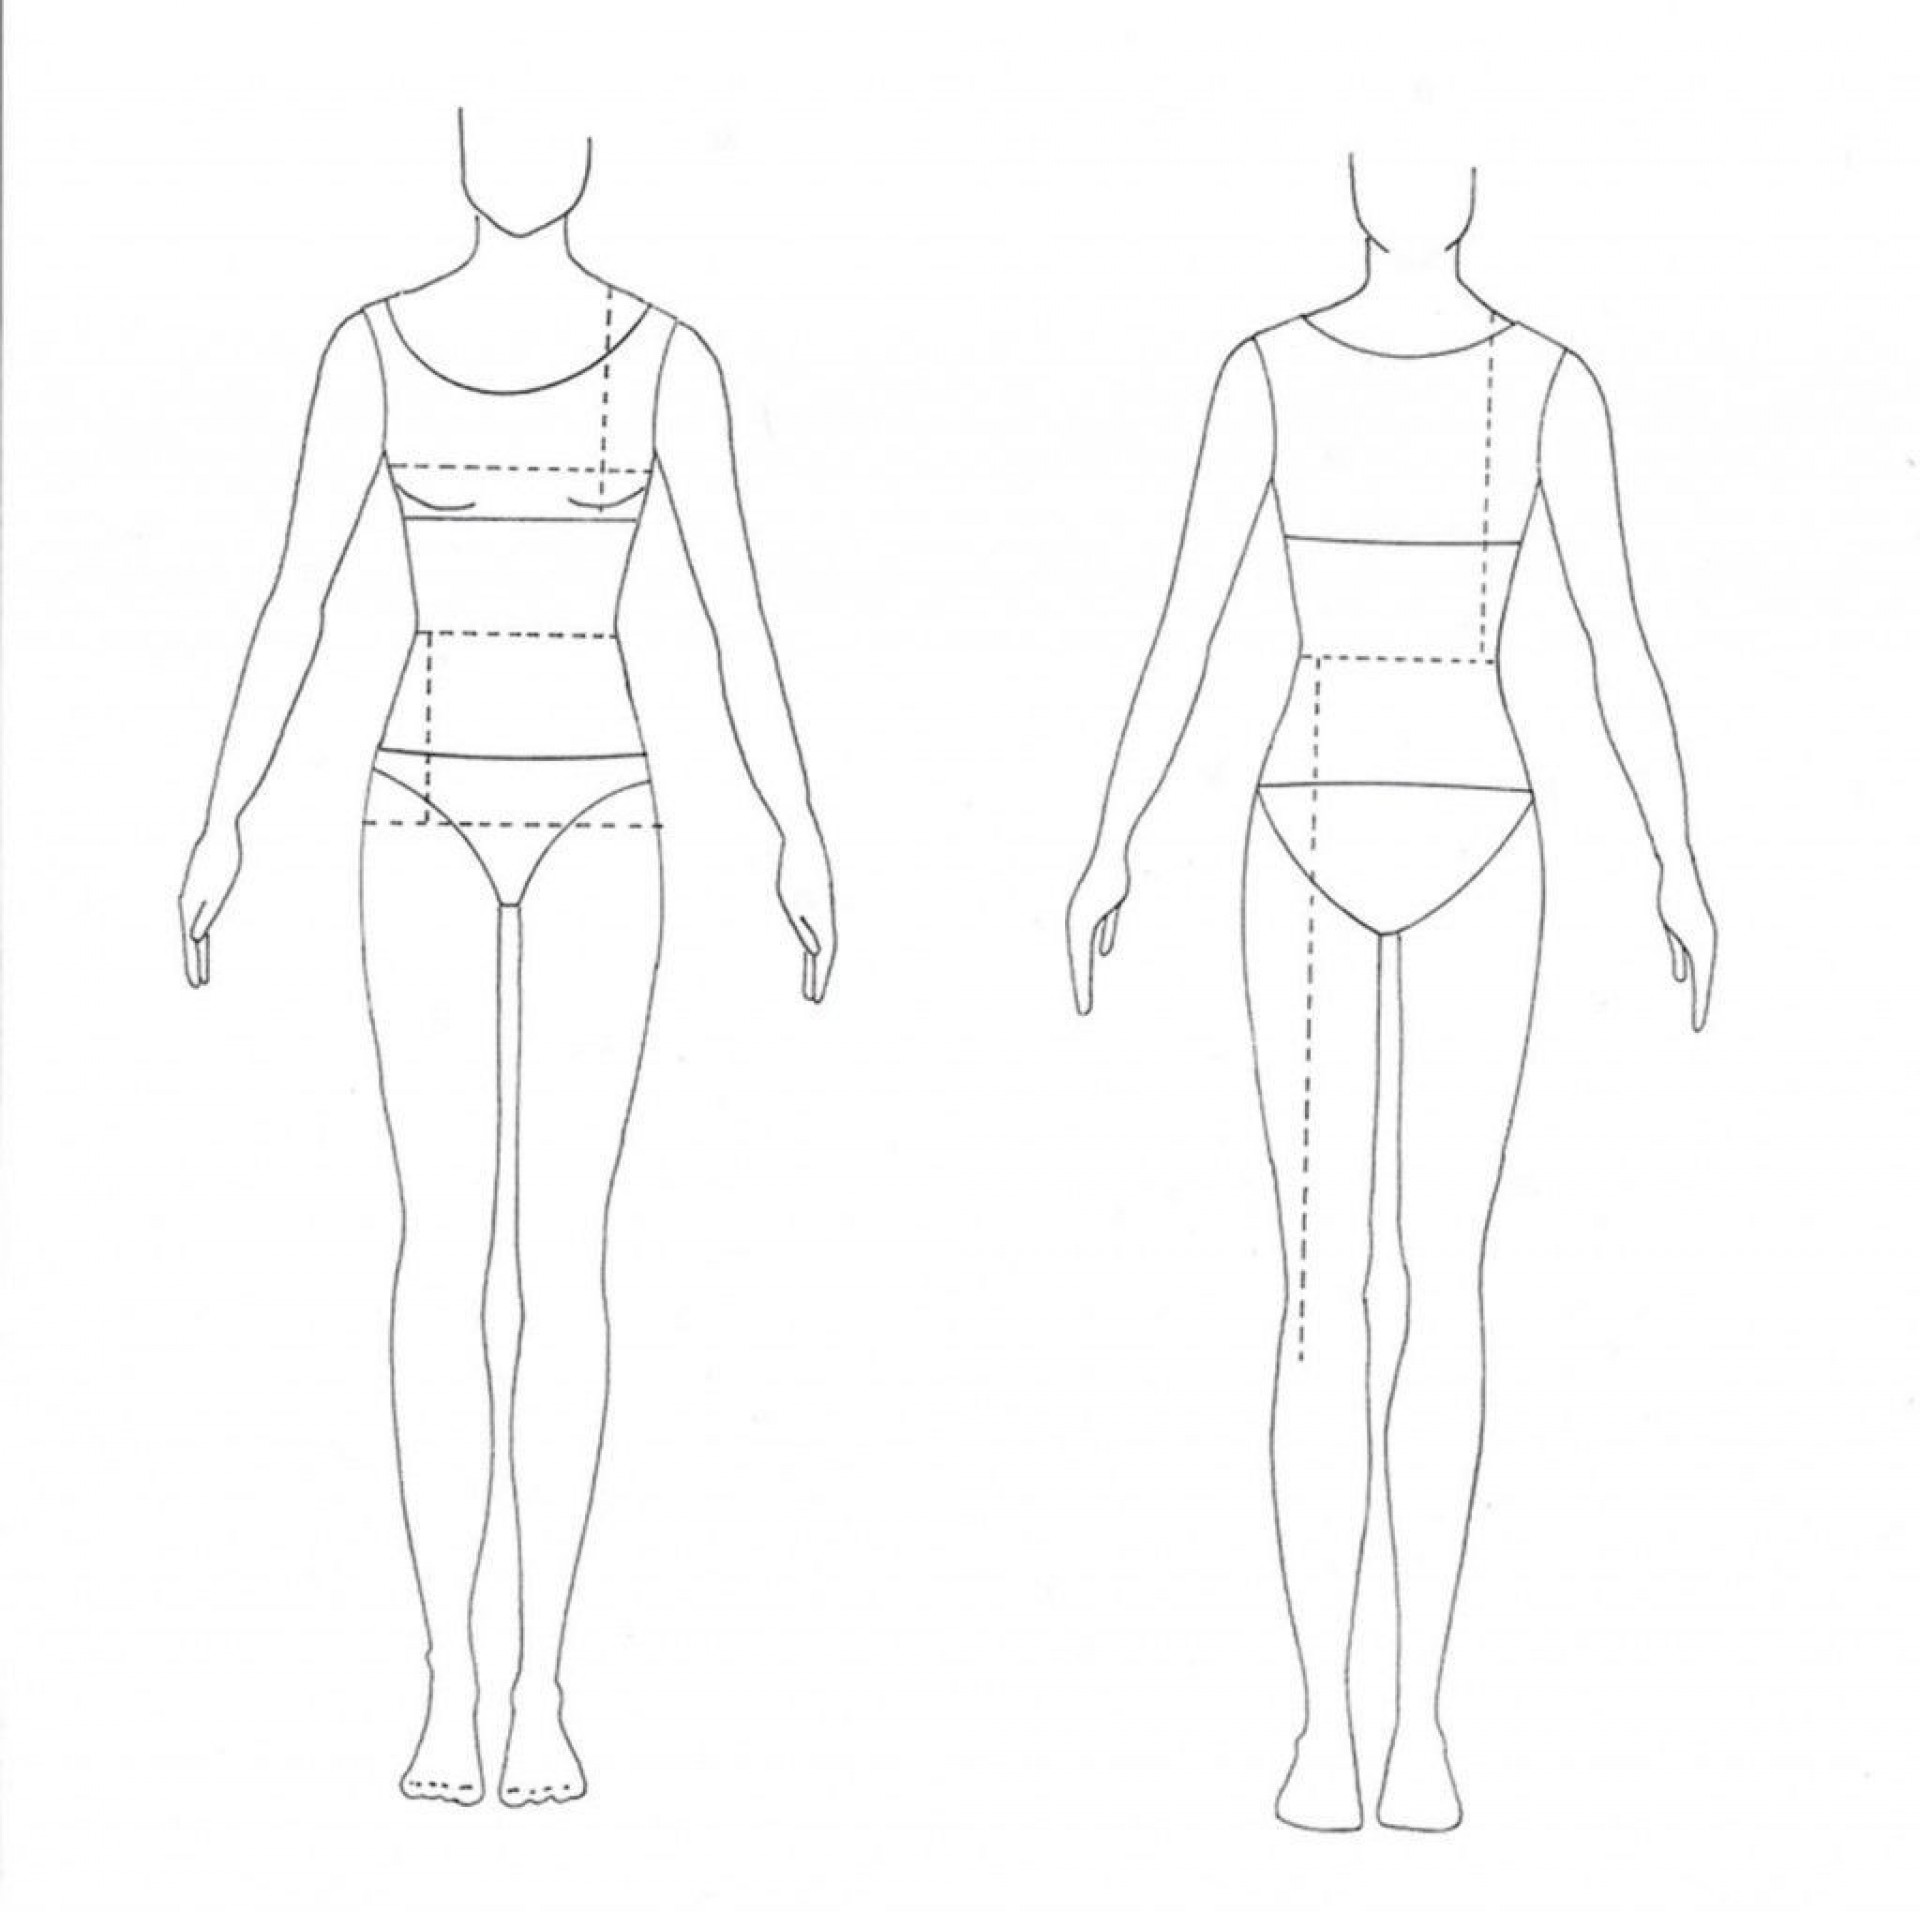 008 Shocking Body Template For Fashion Design Concept  Female Male Human1920